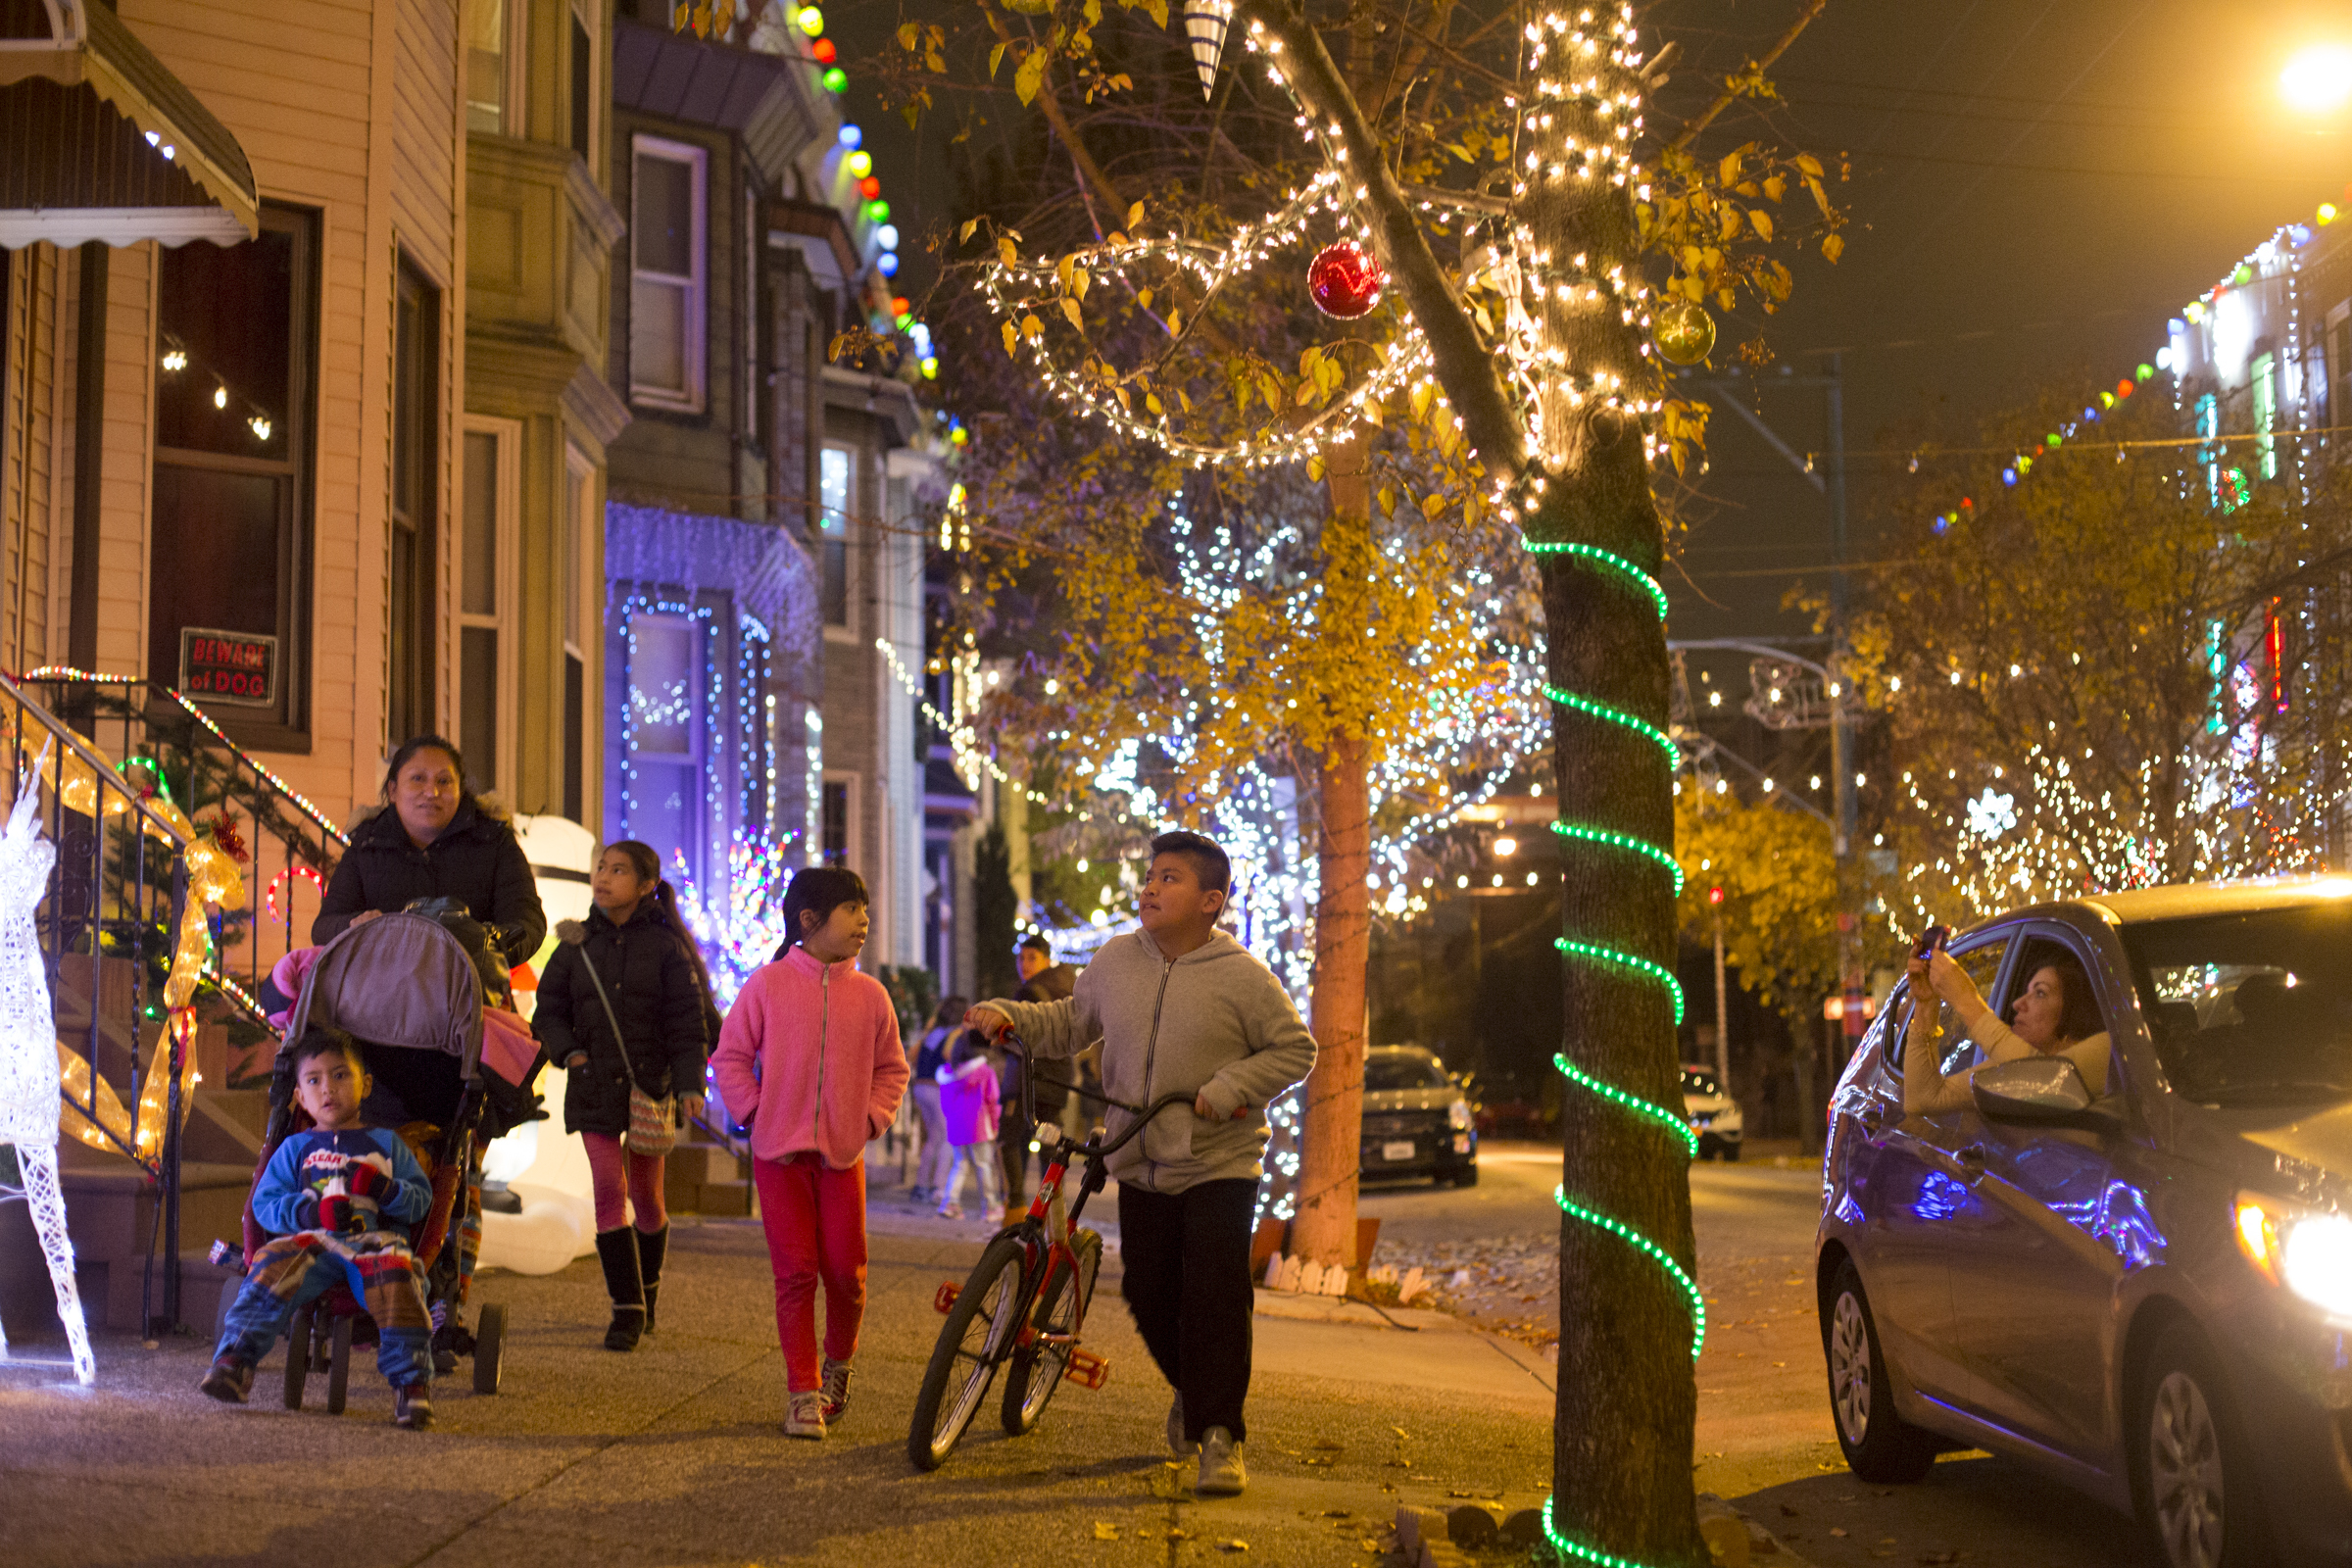 """Magdalena Vazquez walks with her children, Alan Ruiz, 3, Ashley Ruiz, 11, Carolina Ruiz, 10, and Alexis Ruiz, 10, through the 1600 block of South 13th street where lights are being put up for the """"Miracle on South 13th Street"""" Friday, November 25, 2016."""